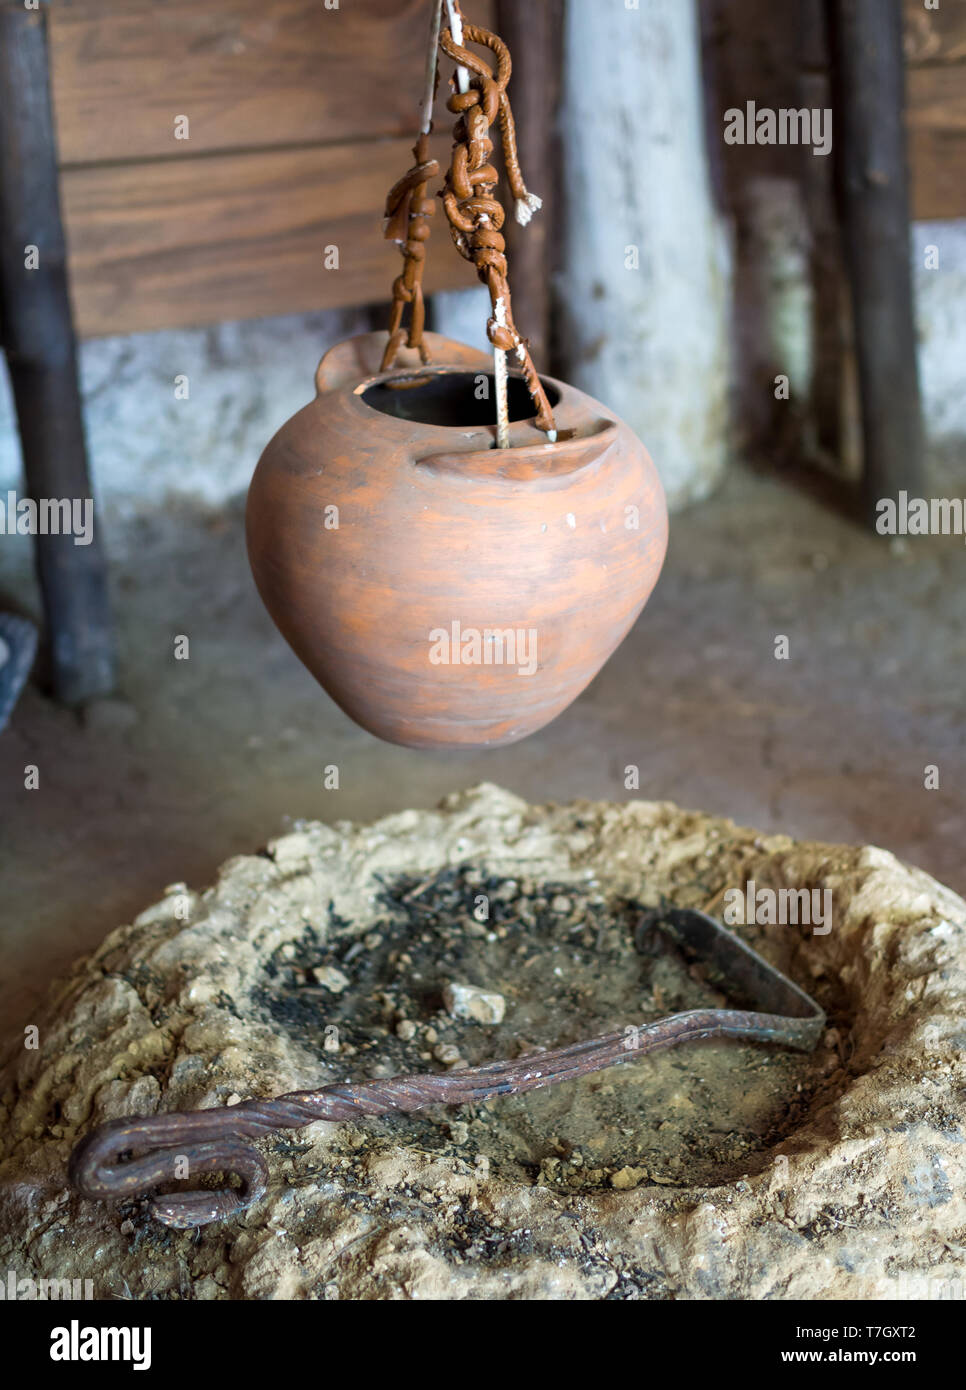 The hearth in the ancient settlement, the archaeological park 'From nomads to cities', Divnogorye, Voronezh region - Stock Image